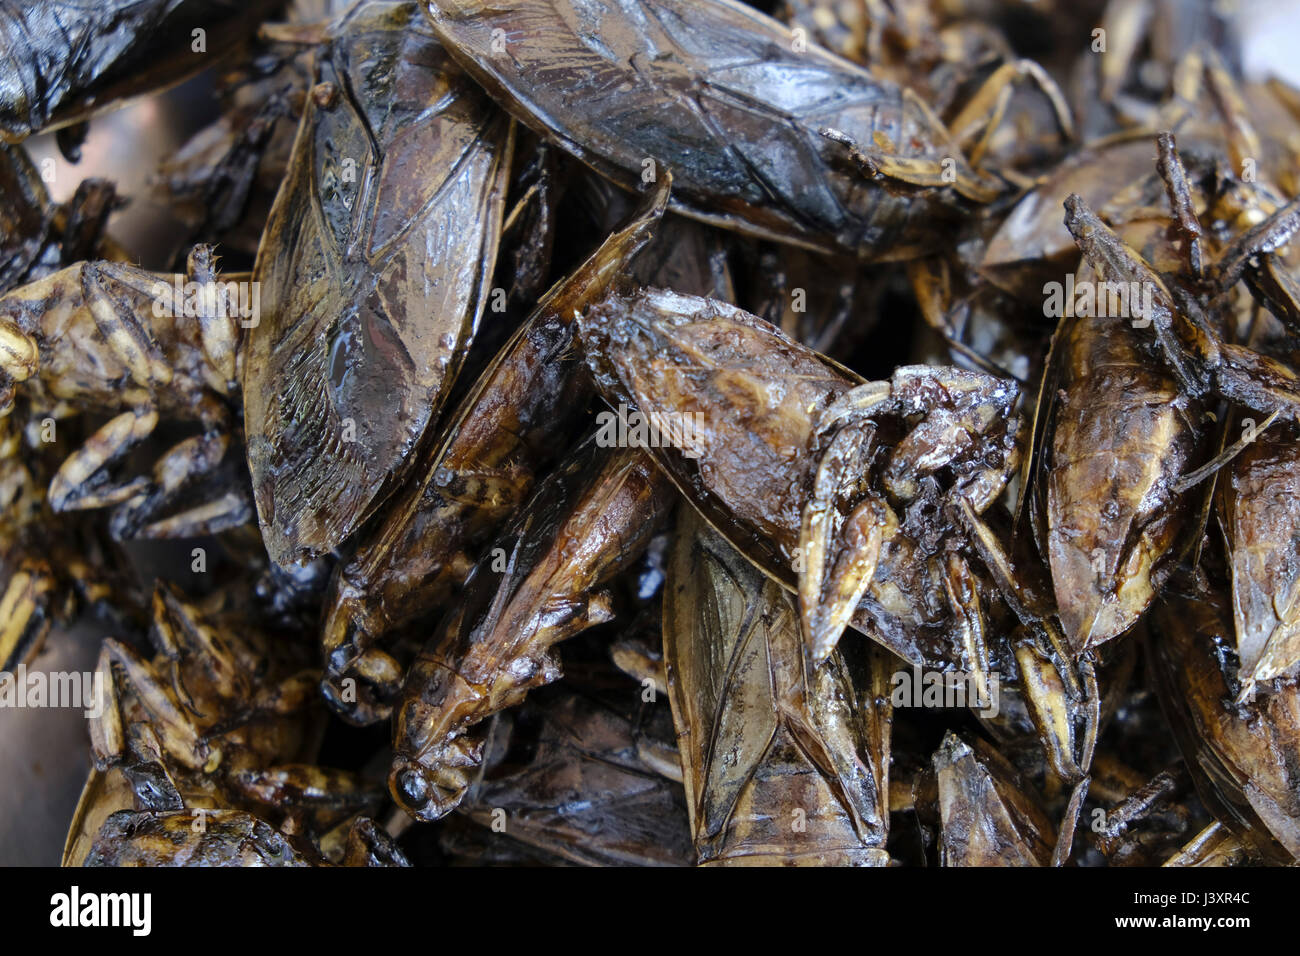 Water scorpion snacks for sale at a street side stall - Stock Image